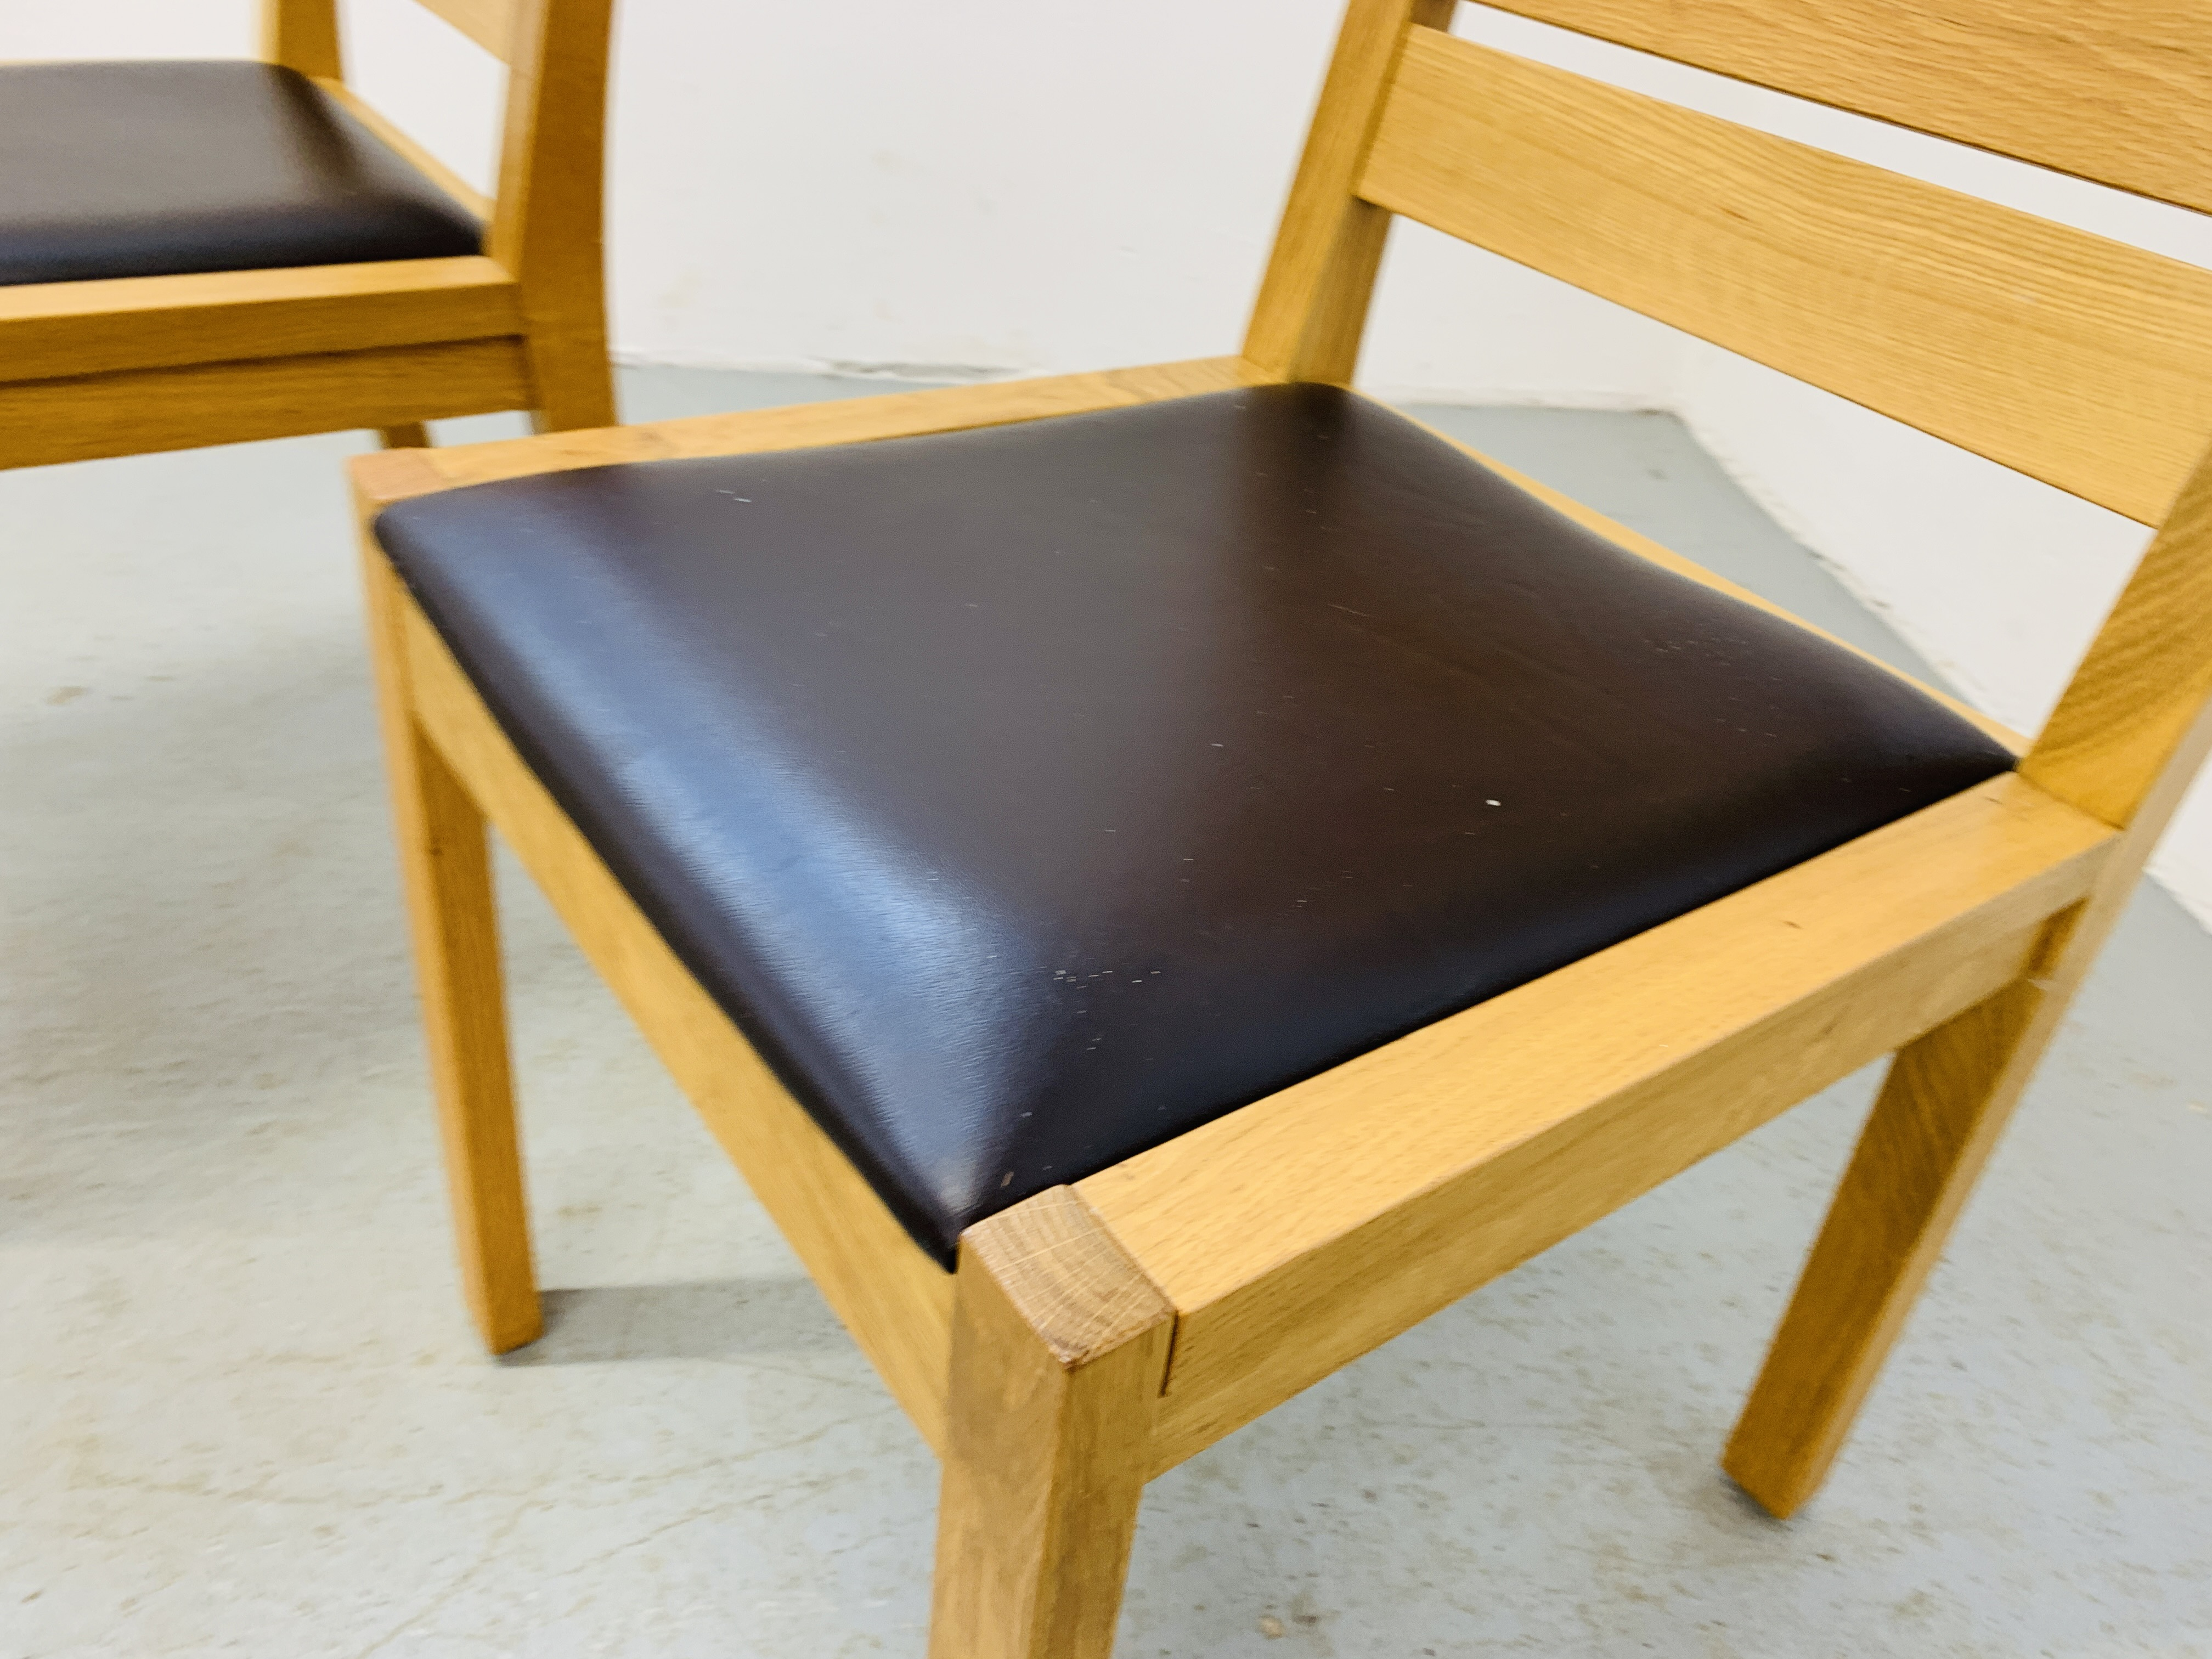 A PAIR OF LIGHT OAK MODERN SIDE CHAIRS - Image 5 of 9